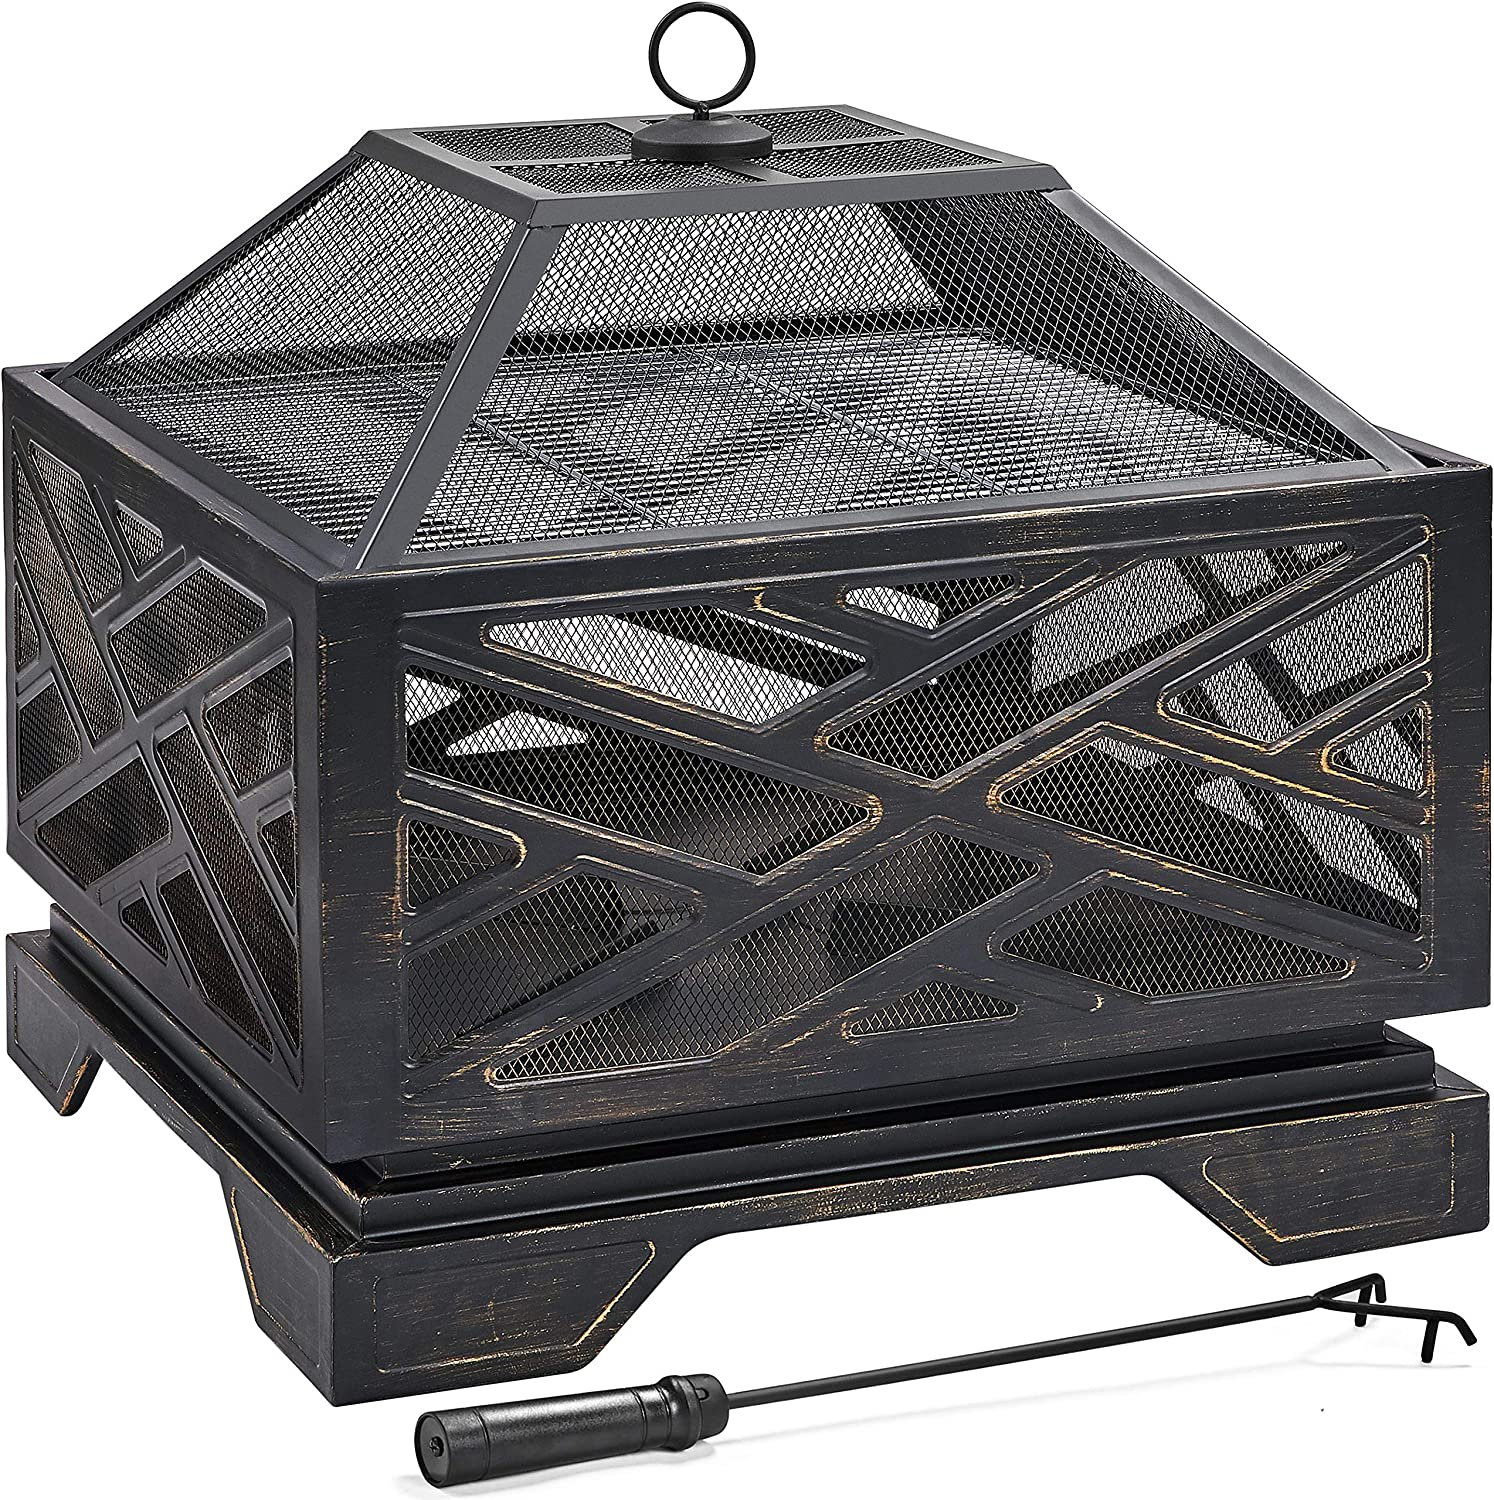 Yaheetech 26inch Outdoor Fireplace Metal Max 42% OFF W Fire Stove Max 49% OFF Deep Bowl